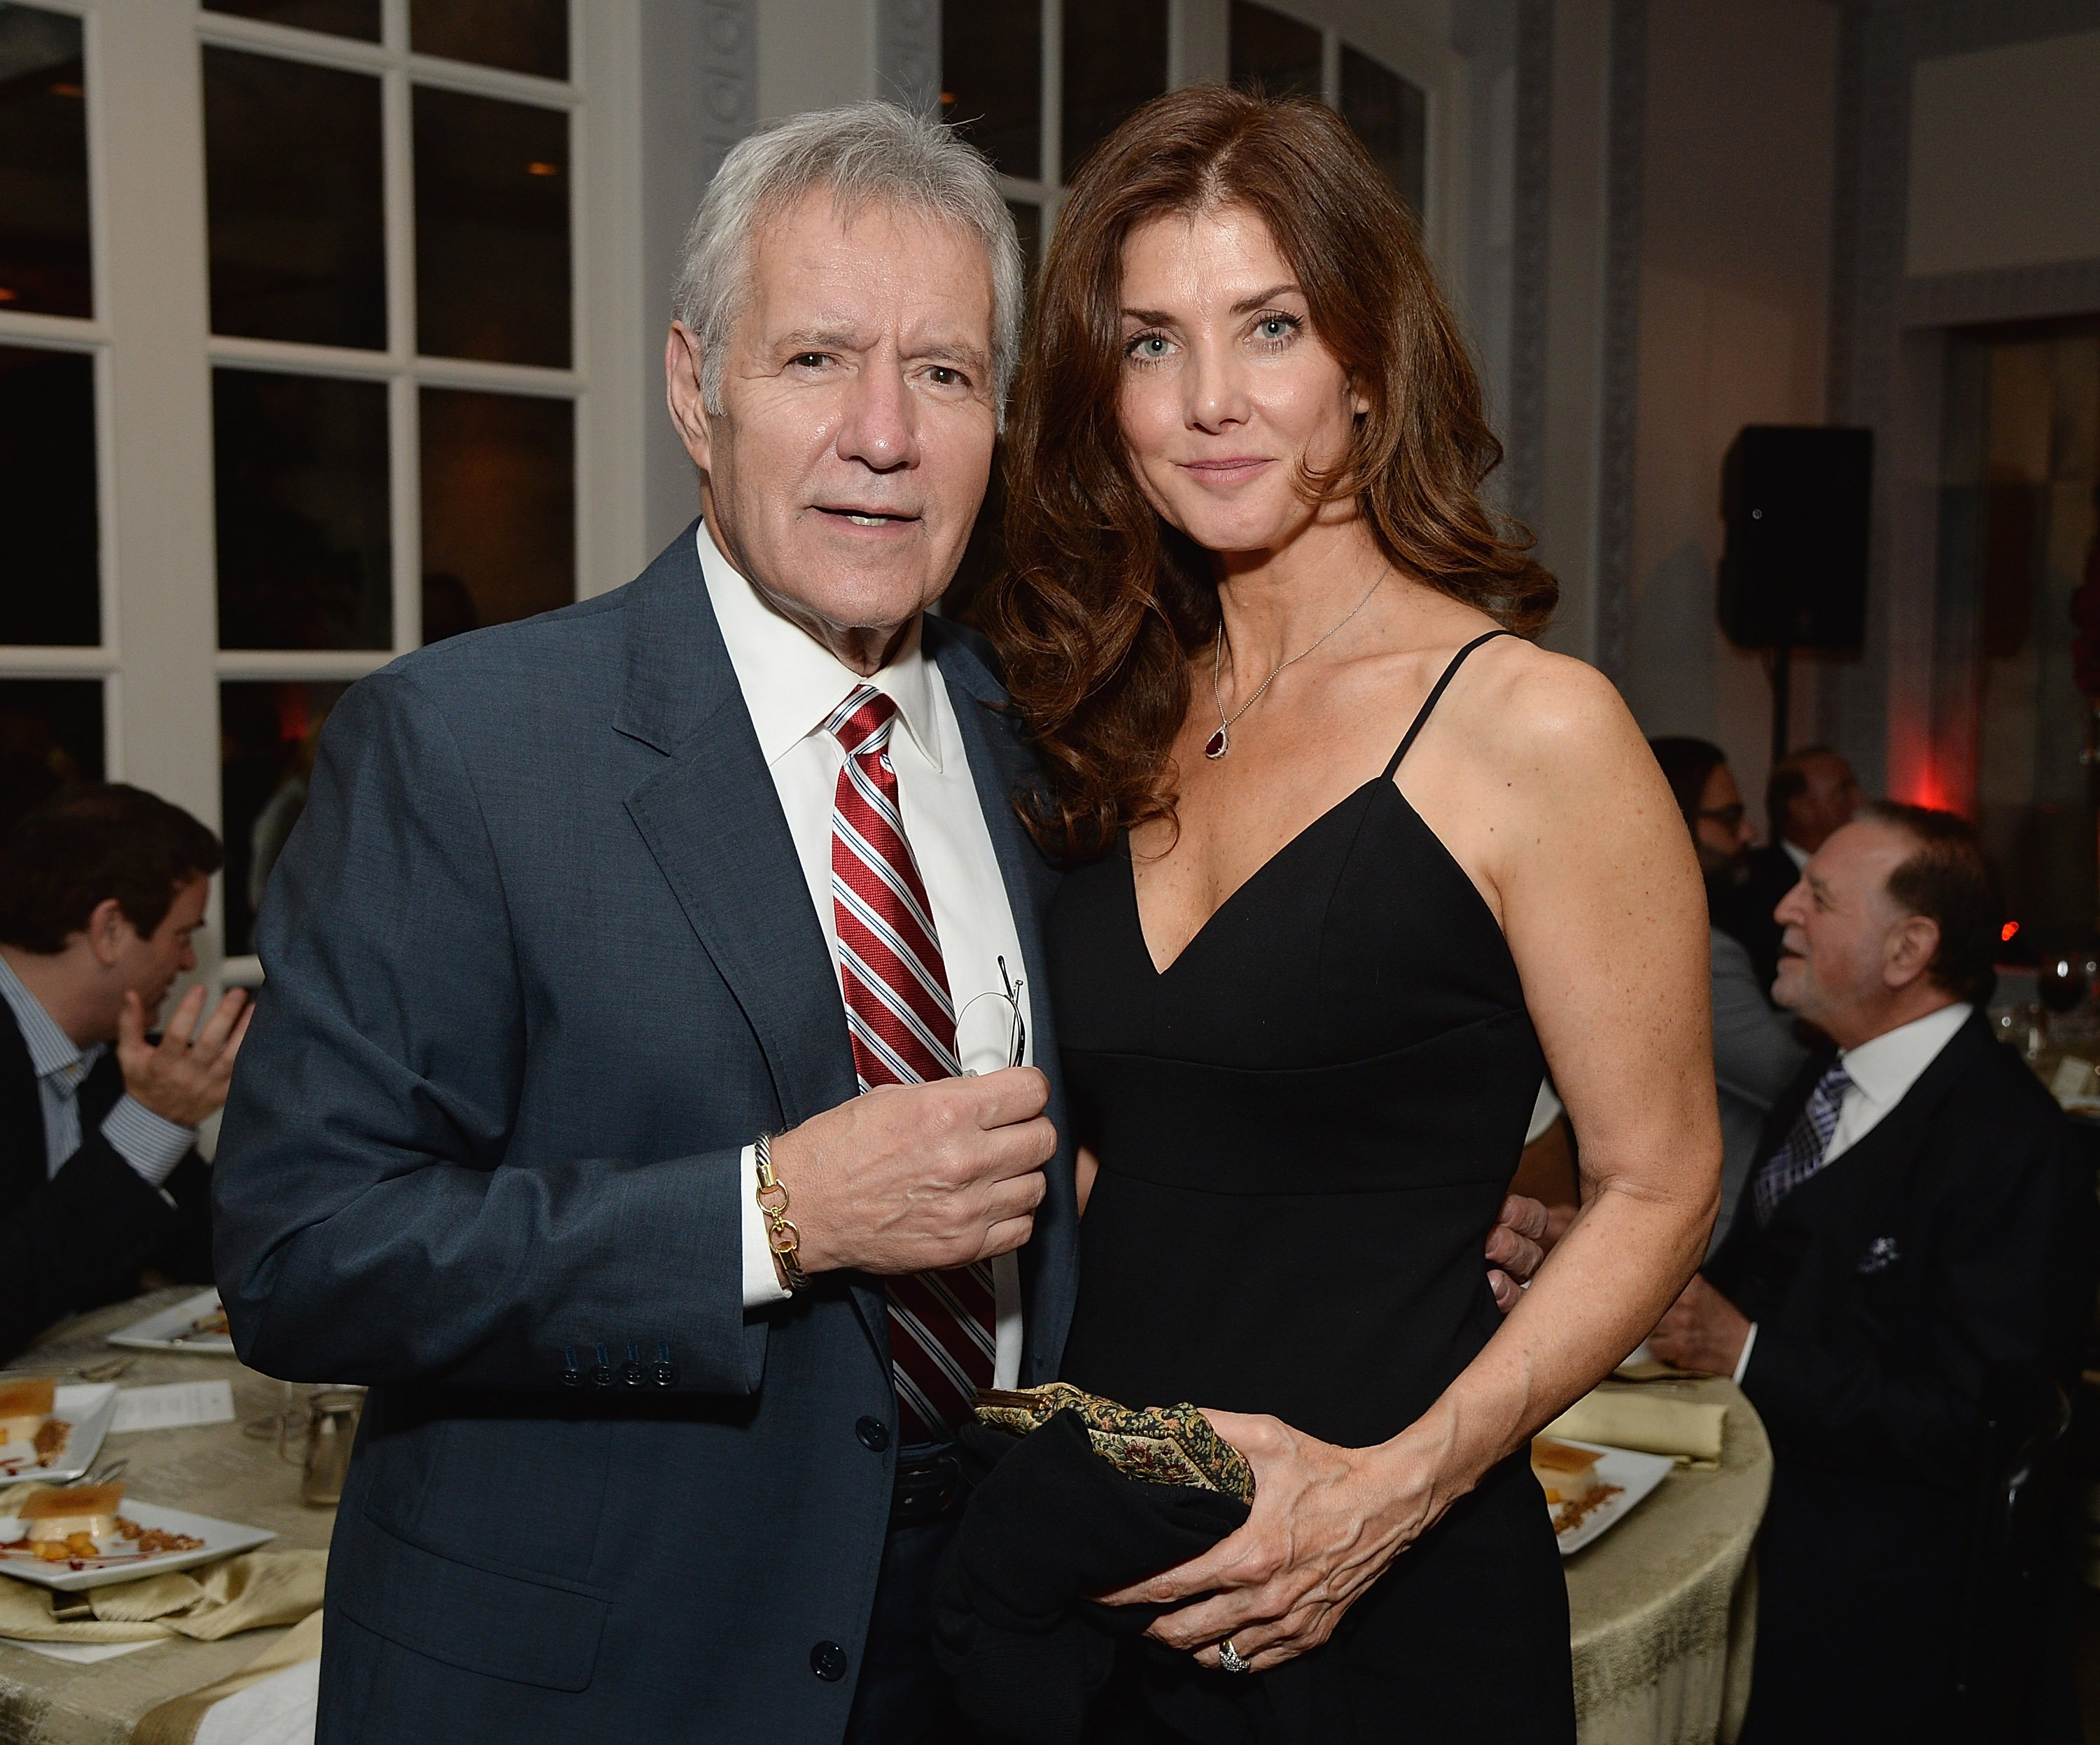 Trebek and his wife of 29 years, Jane Currivan. | Image credit: Getty/Global Images Ukraine